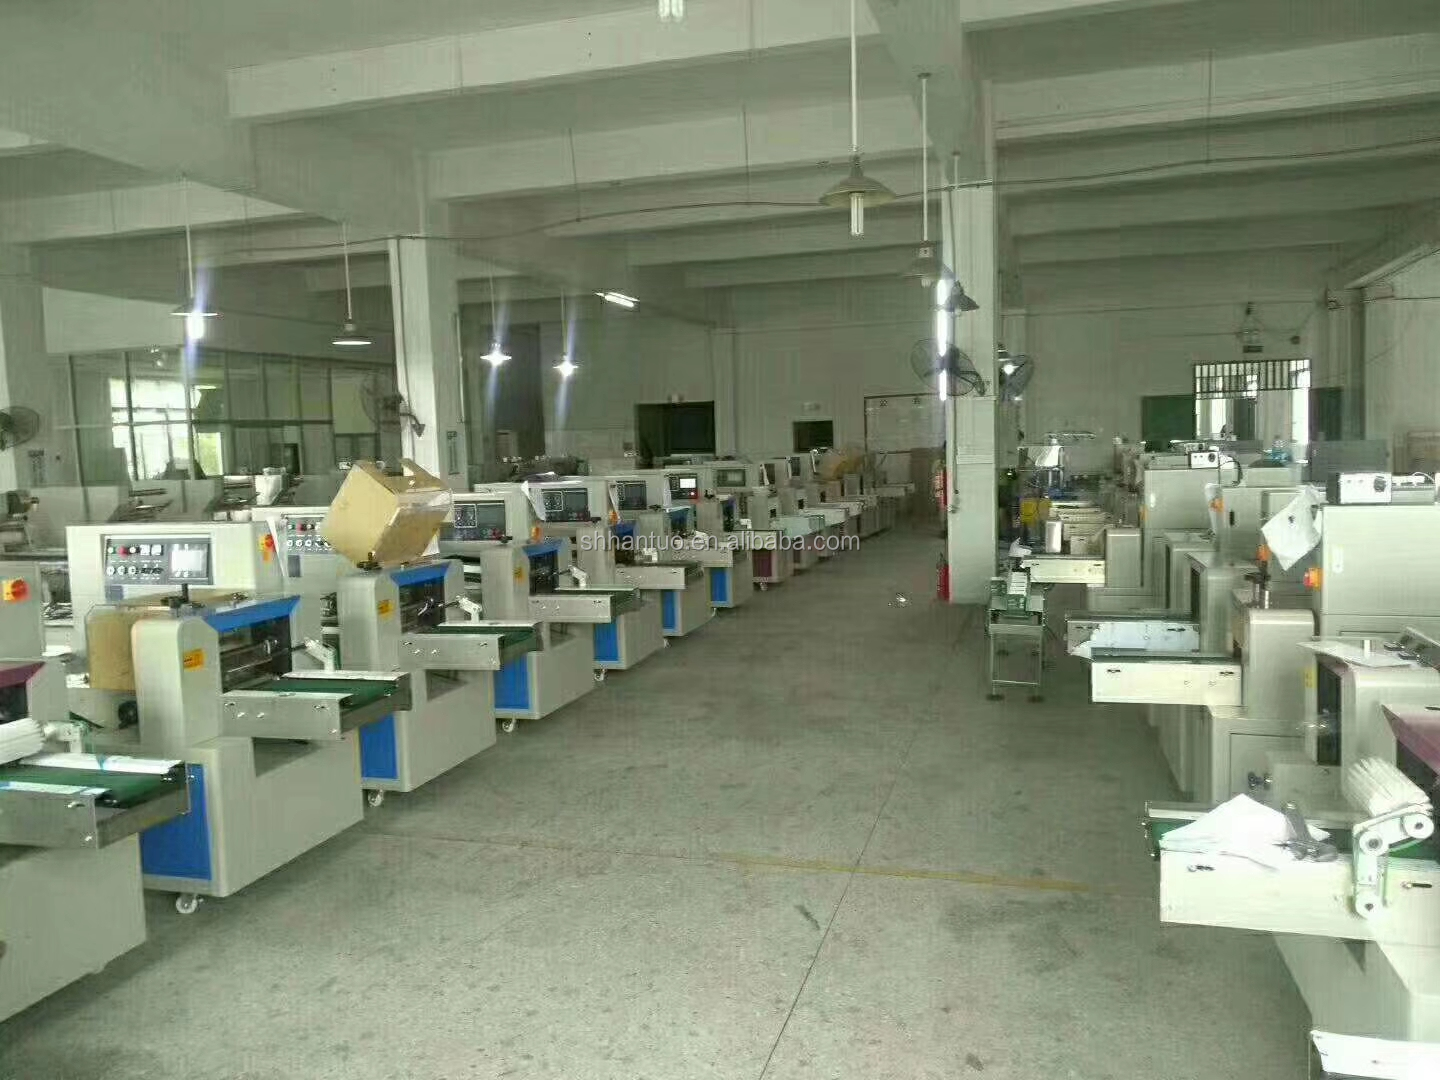 Flow Pack Medical Gauze Roll wrapping machine spoon flow Wrapping Machine